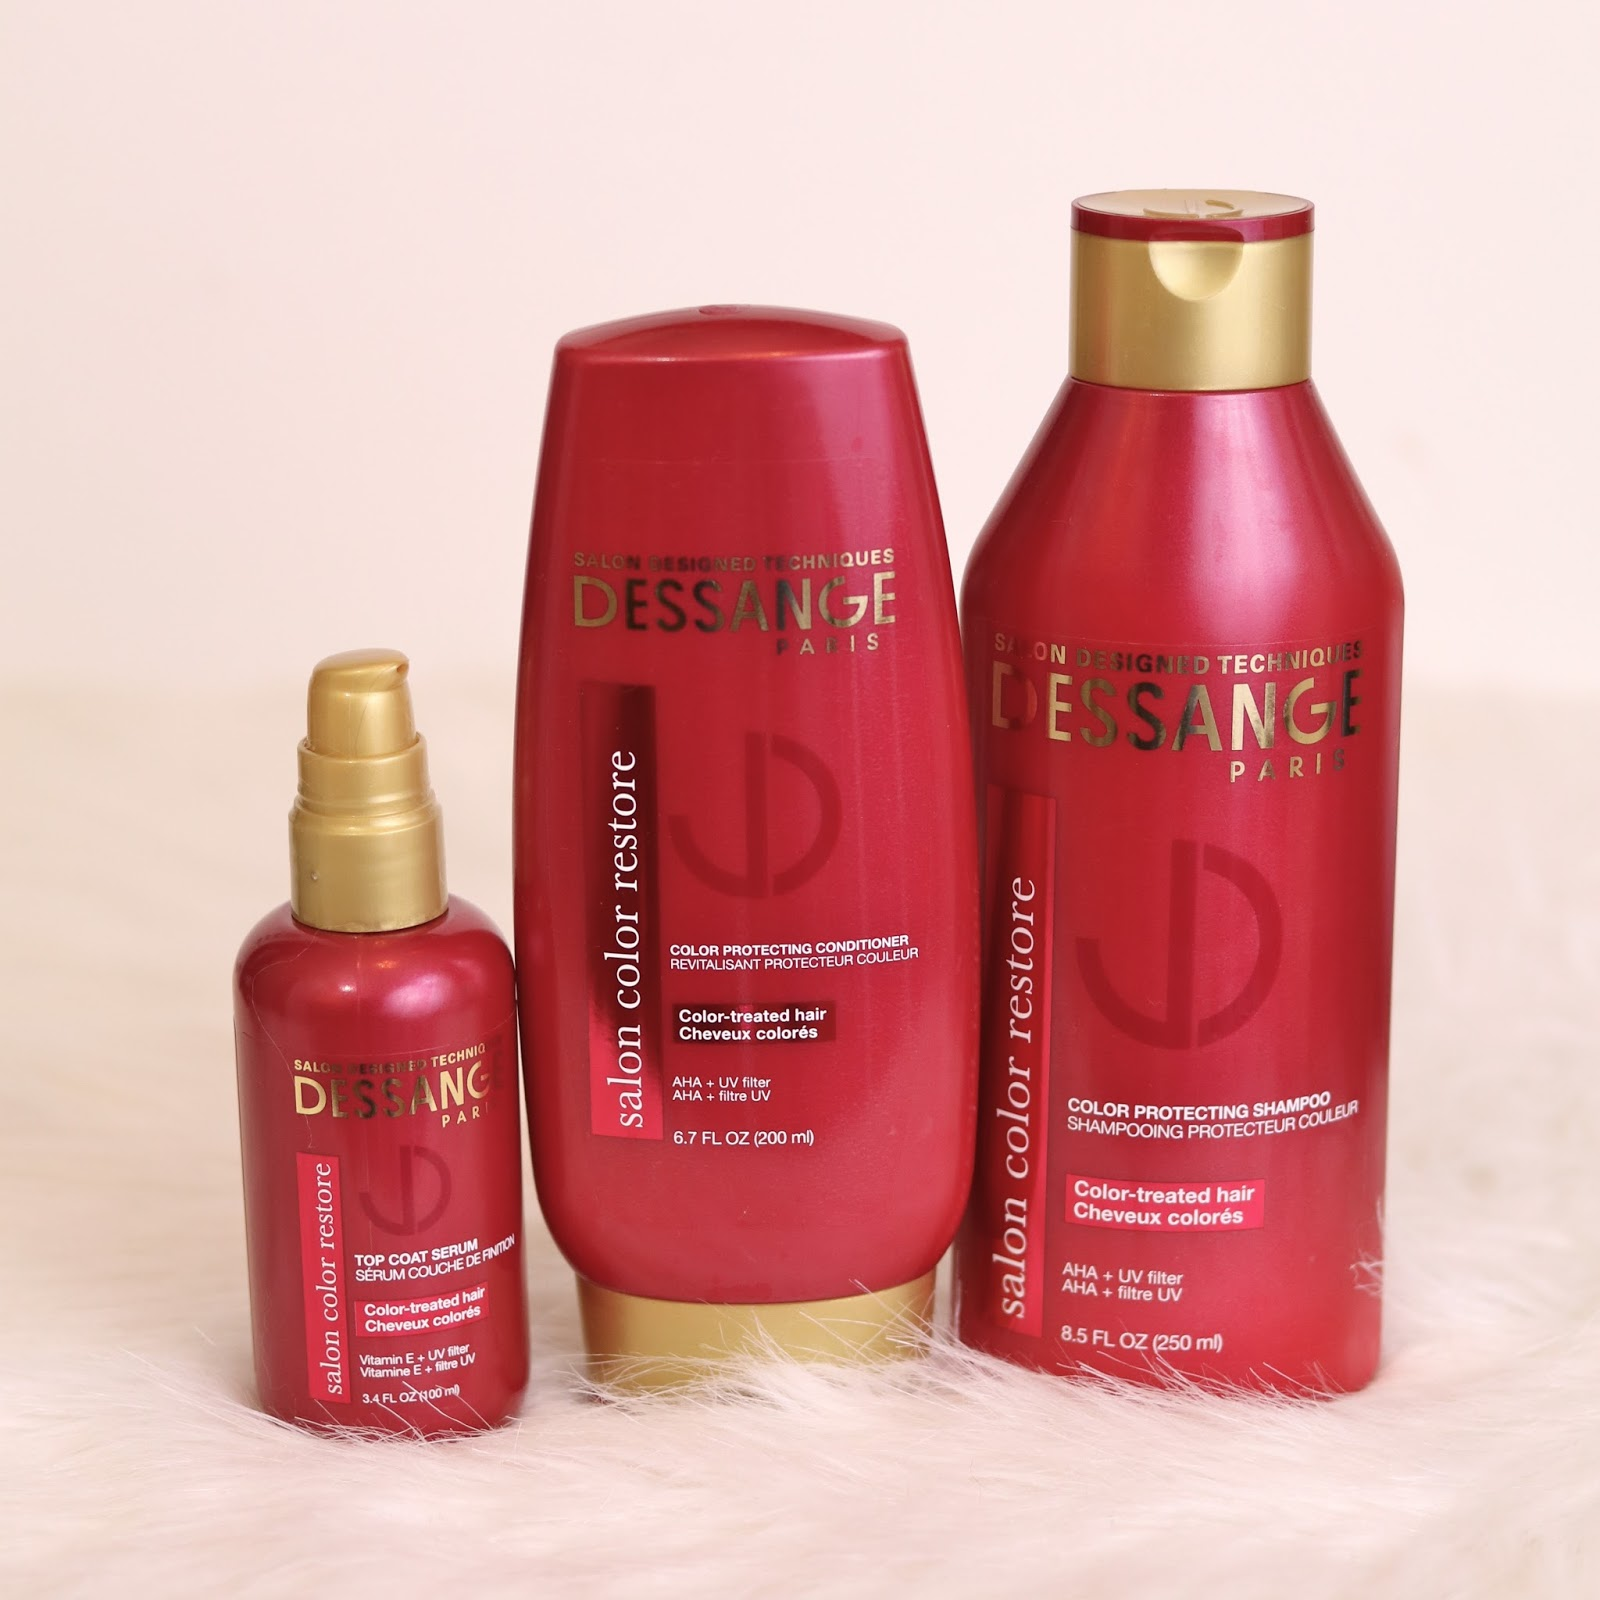 Dessange Salon Color Restore, Dessange Salon Color Restore shampoo review, Dessange Salon Color Restore conditioner review